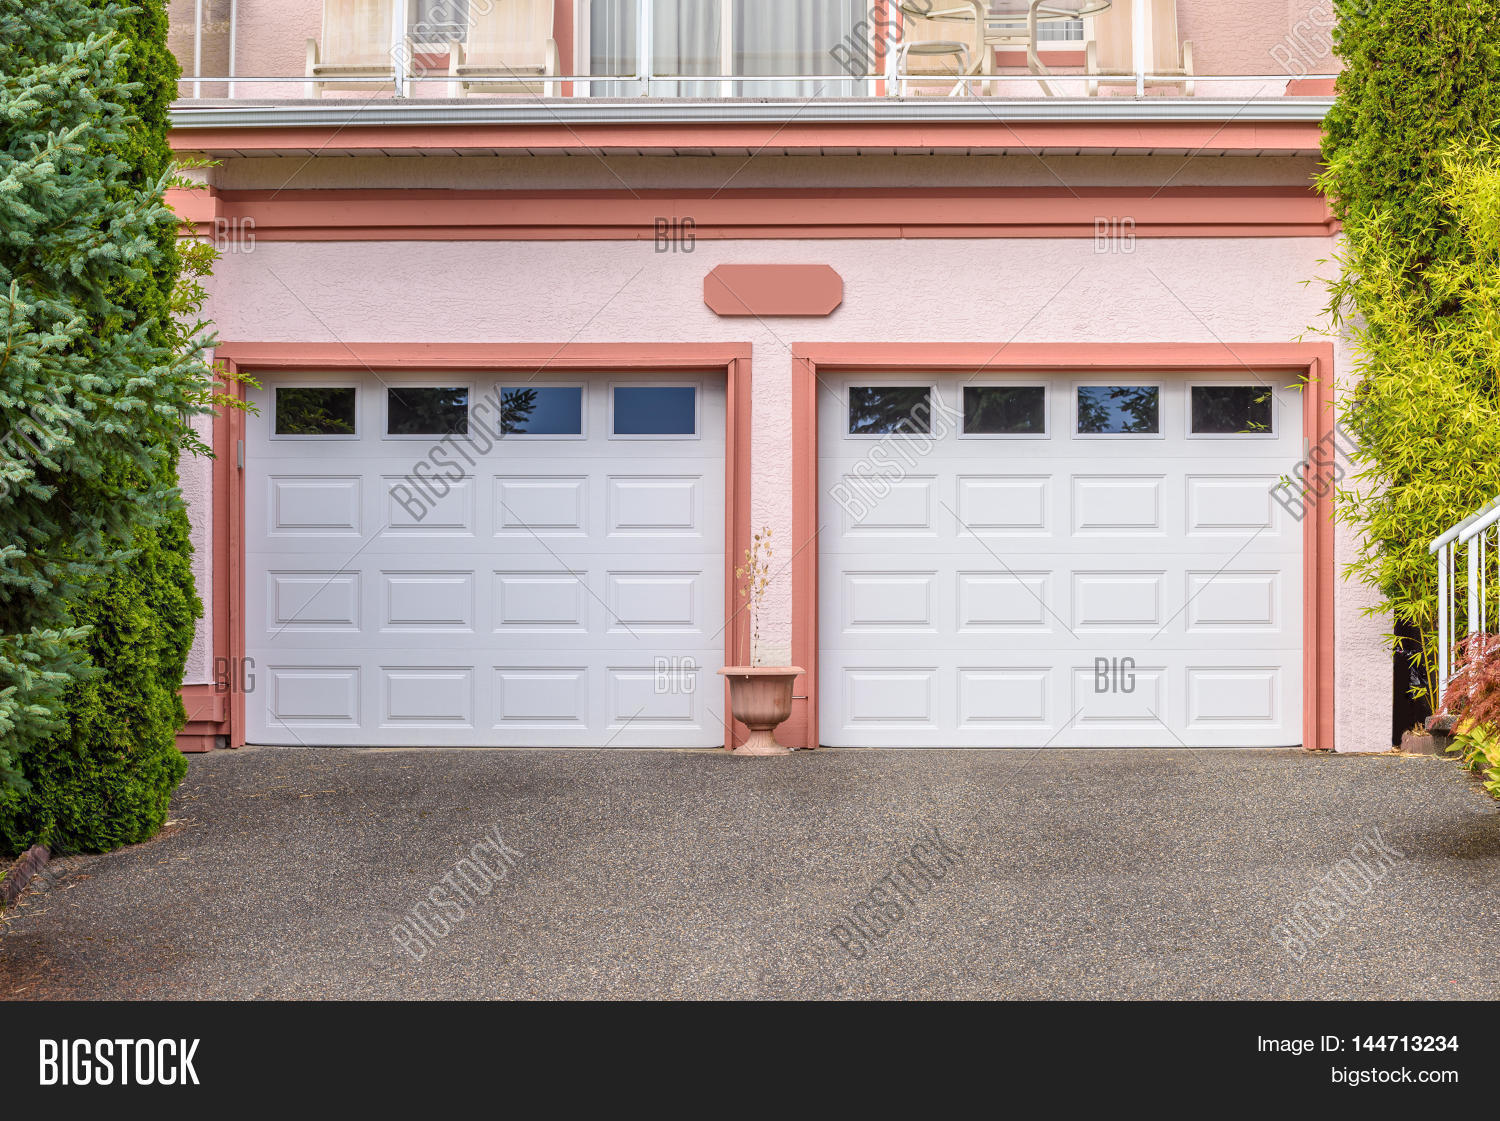 1121 #A7A324 Garage Door In Vancouver Canada. Stock Photo & Stock Images  pic Entry Doors Canada 45711500